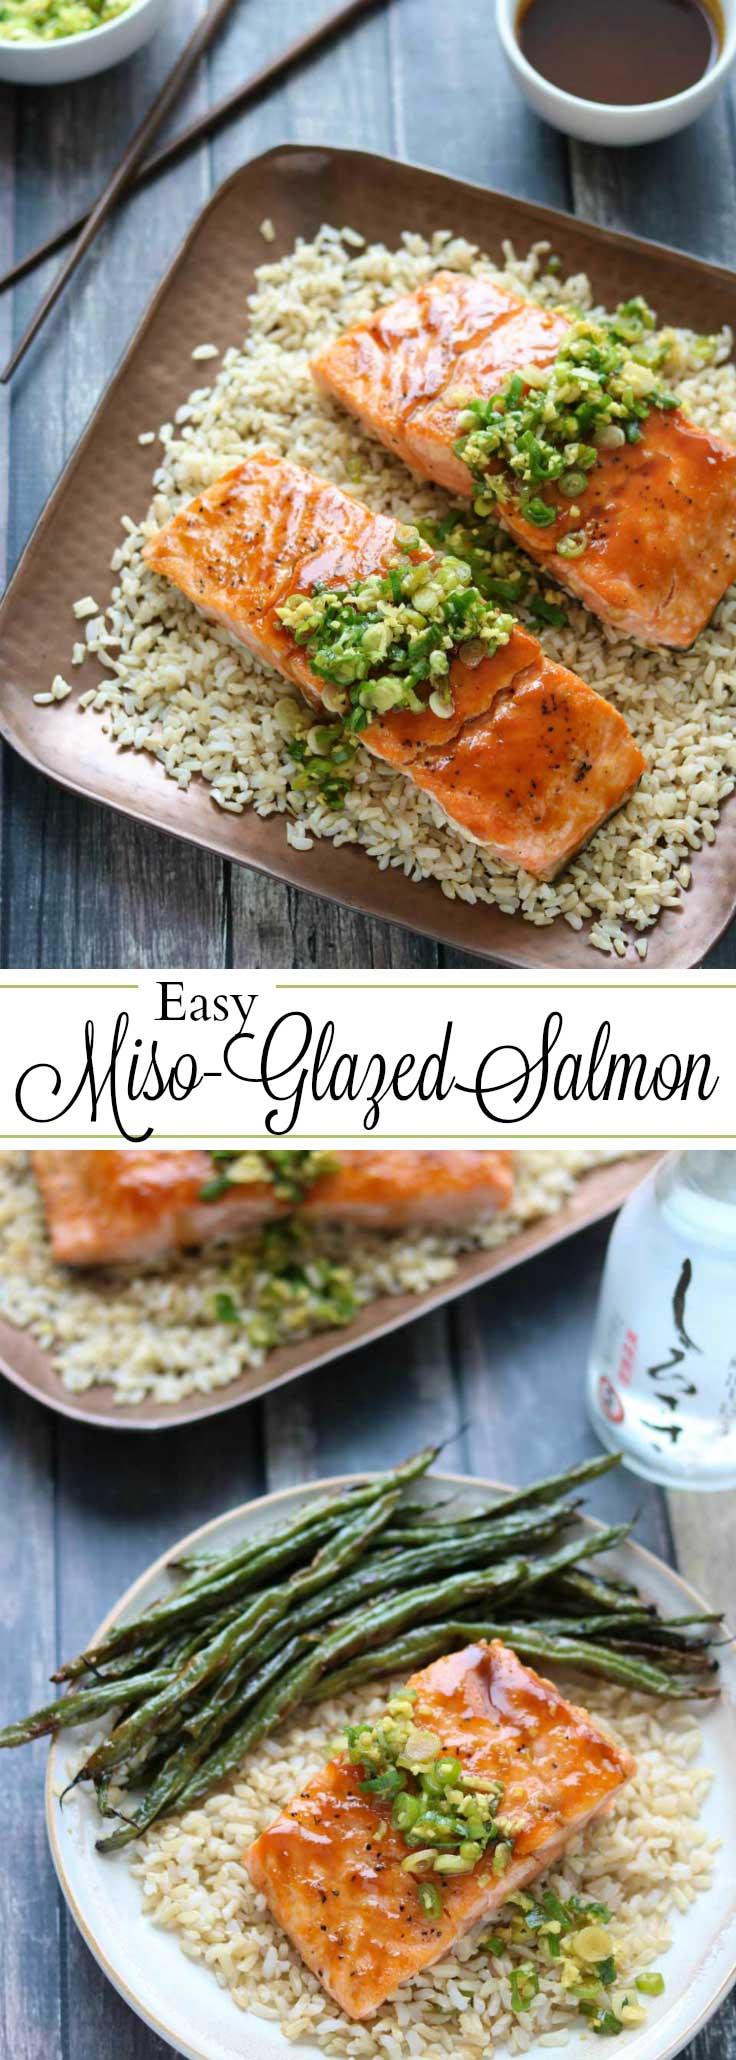 Impressive and delicious … in 30 minutes! Our Red-Miso Glazed Salmon is bursting with bright, savory Asian flavors. This easy salmon recipe was inspired by one of our fave OBX restaurants - Buddha'Licious in Corolla, North Carolina. It's satisfying and vibrantly delicious - the perfect way to elevate a healthy salmon recipe to superstar status! Plus, you can make most of this Glazed Salmon recipe ahead of time, so it's perfect for busy nights or wowing guests!   www.TwoHealthyKitchens.com